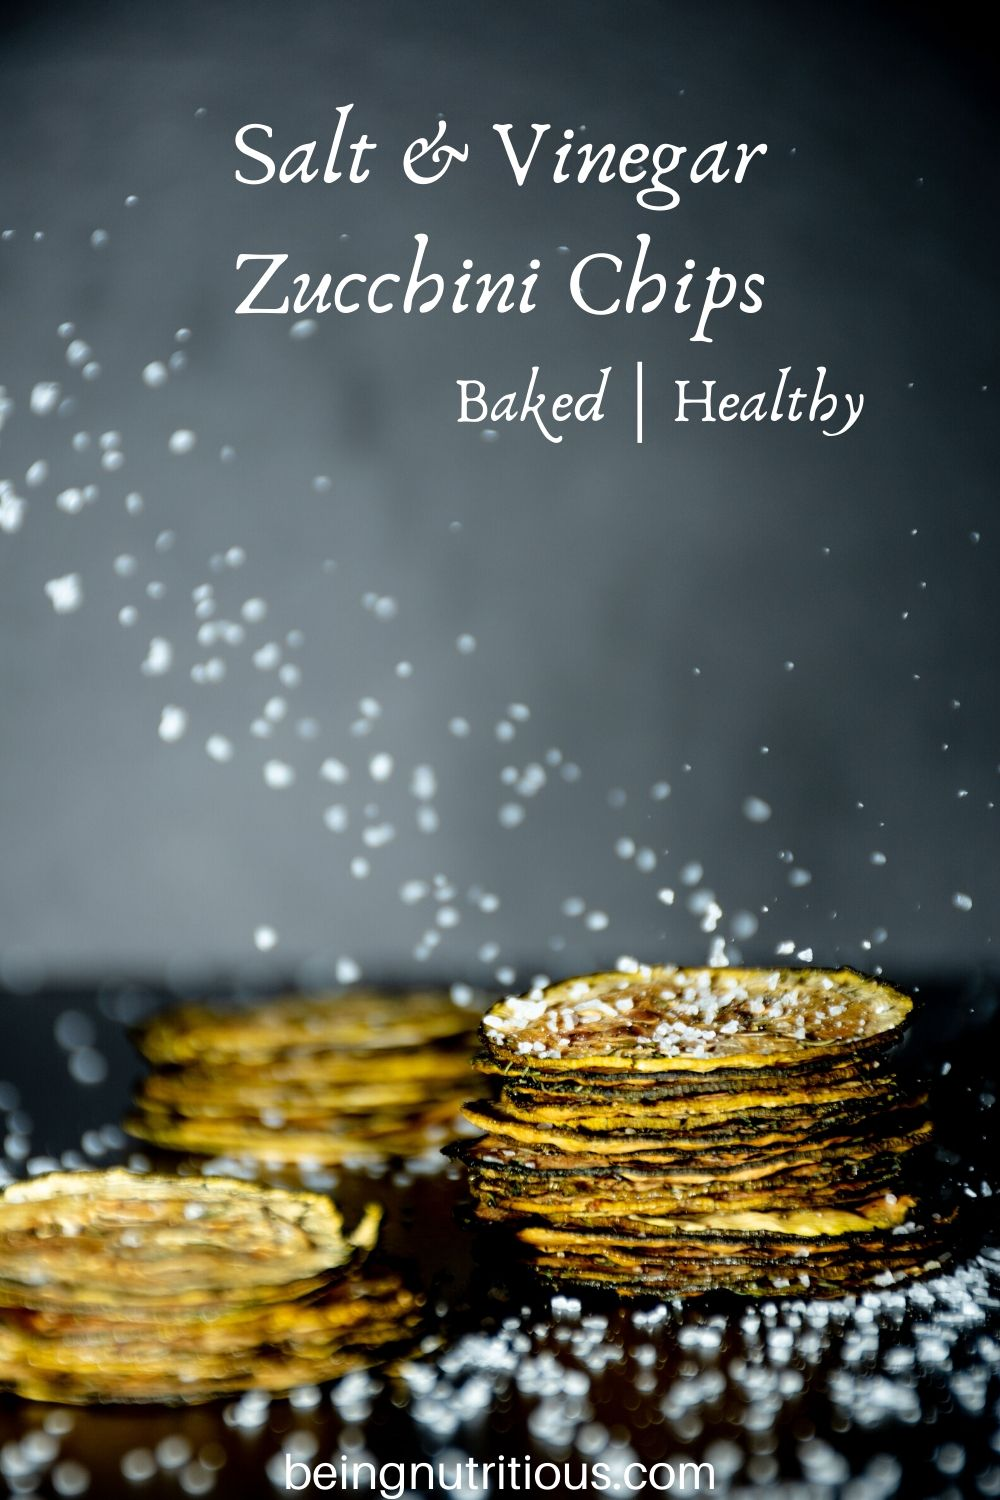 Image of 3 stacks of zucchini chips, with salt crystals falling all around.